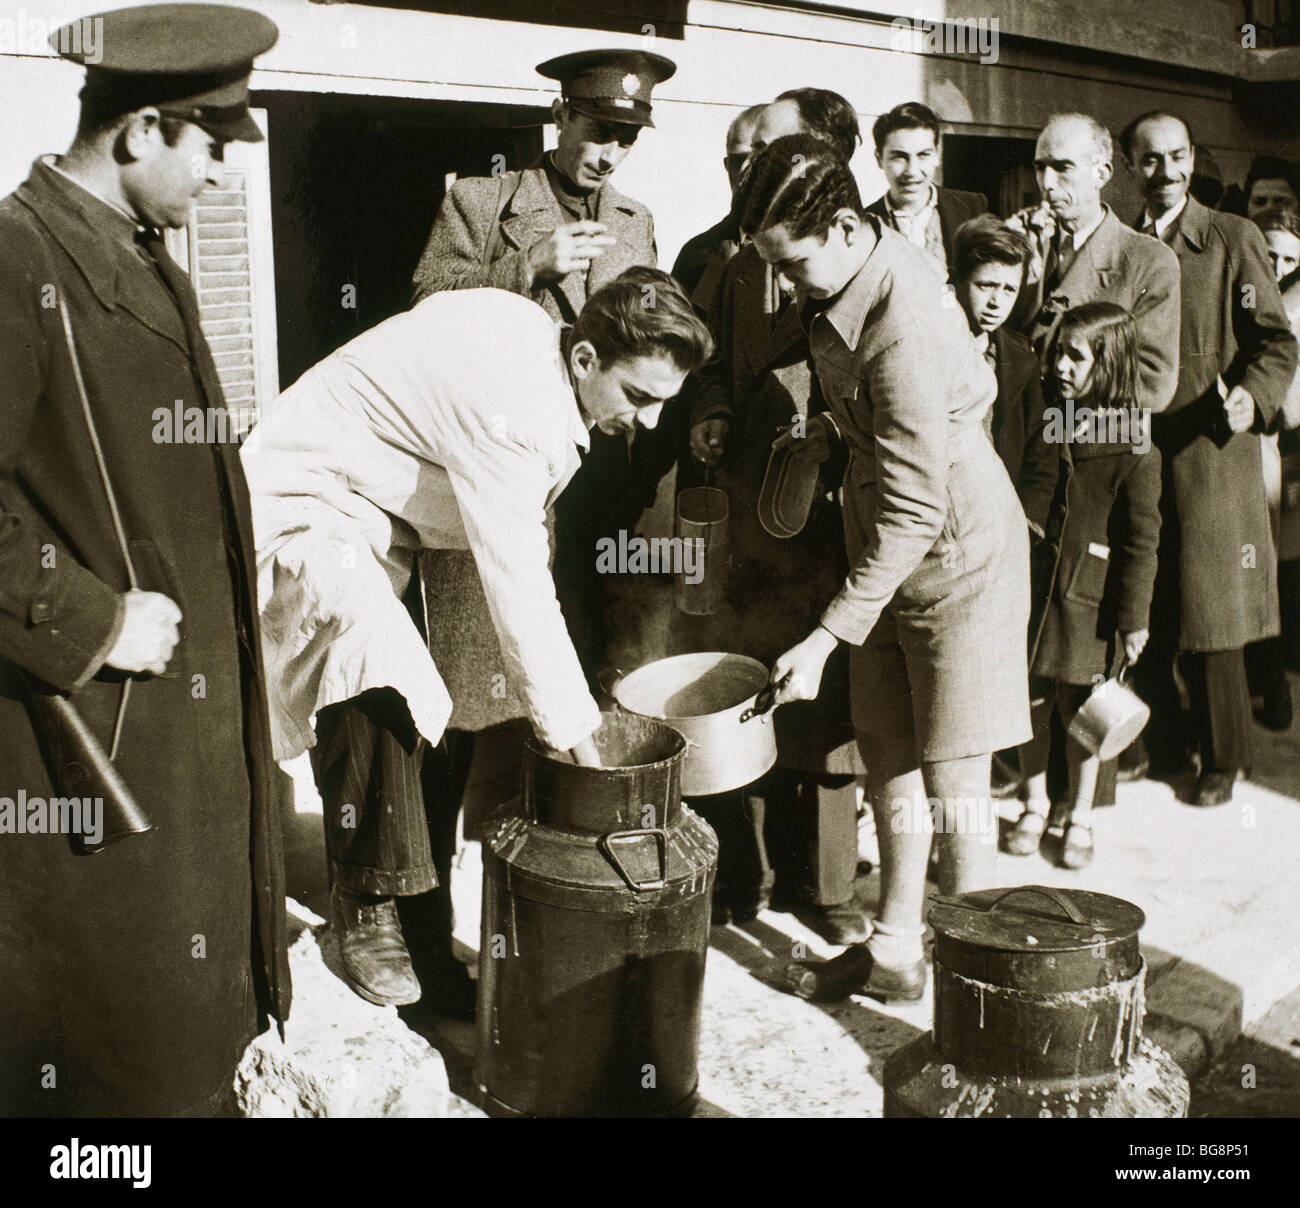 Second World War (1939-1945). The Allies spread food between Greek population with ration card. March 1940. Athens. - Stock Image